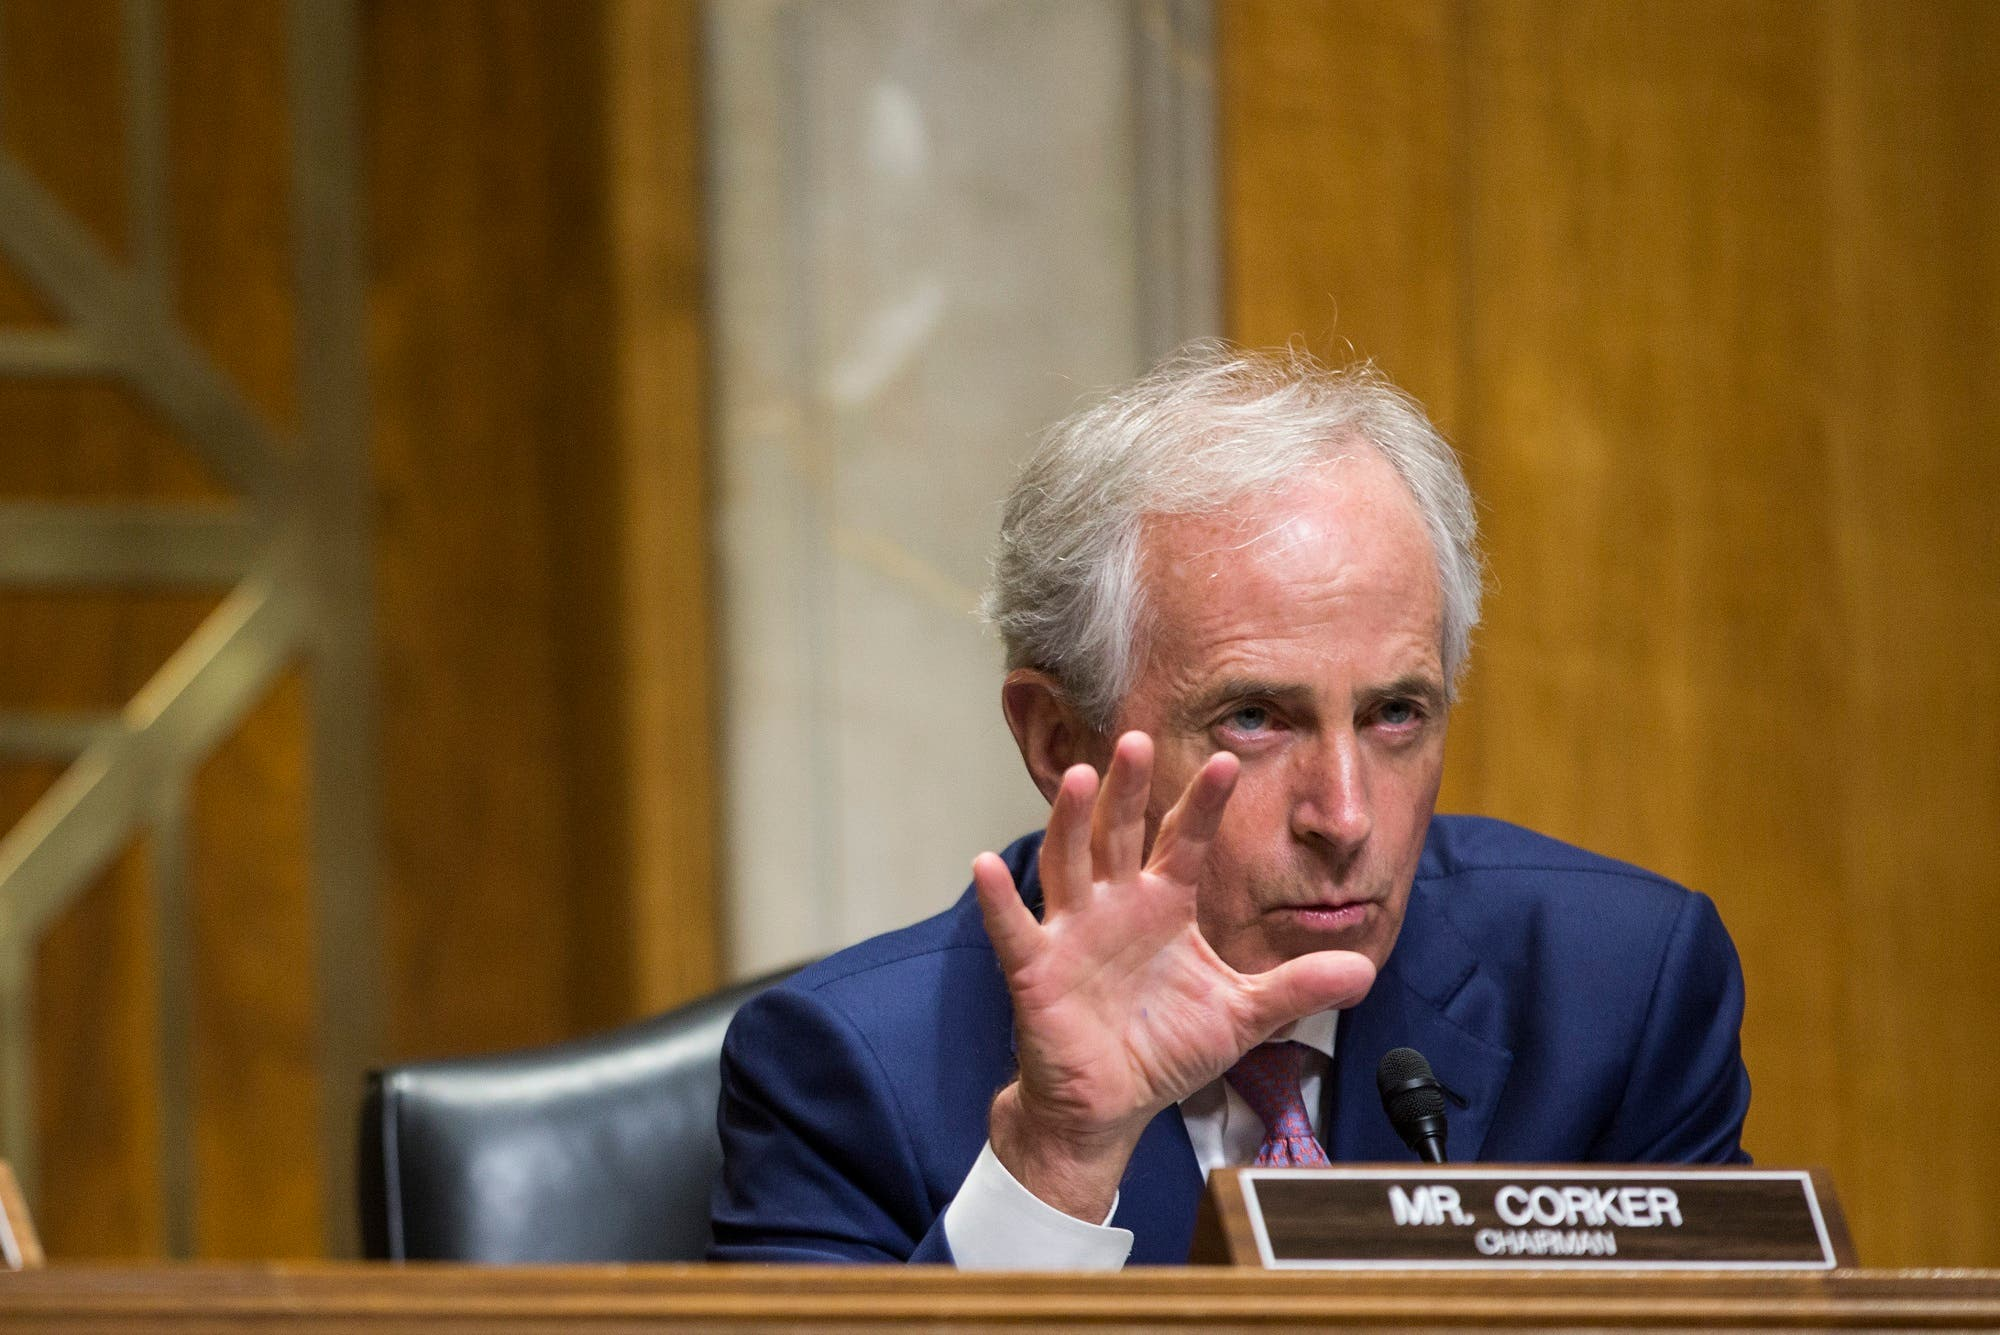 Sen. Bob Corker during a Senate Foreign Relations Committee meeting on Capitol Hill in Washington, DC on February 16, 2017. (AFP)